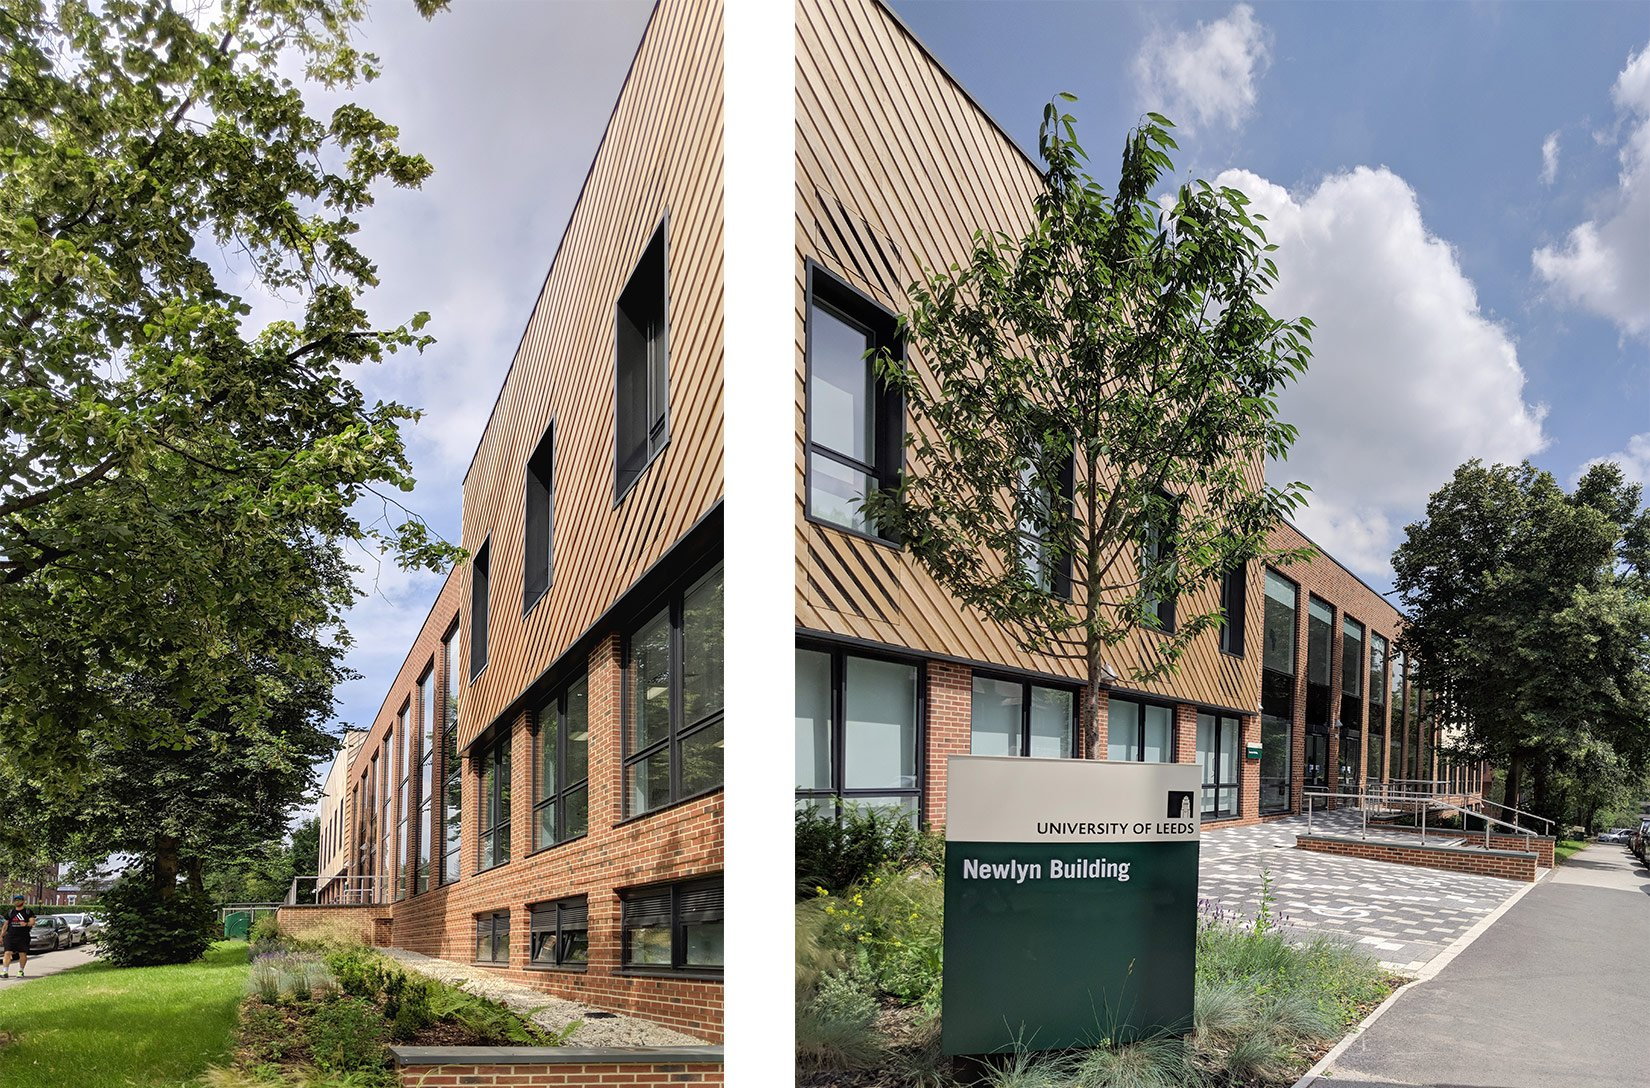 Newlyn Building, University of Leeds, Landscaping and signage